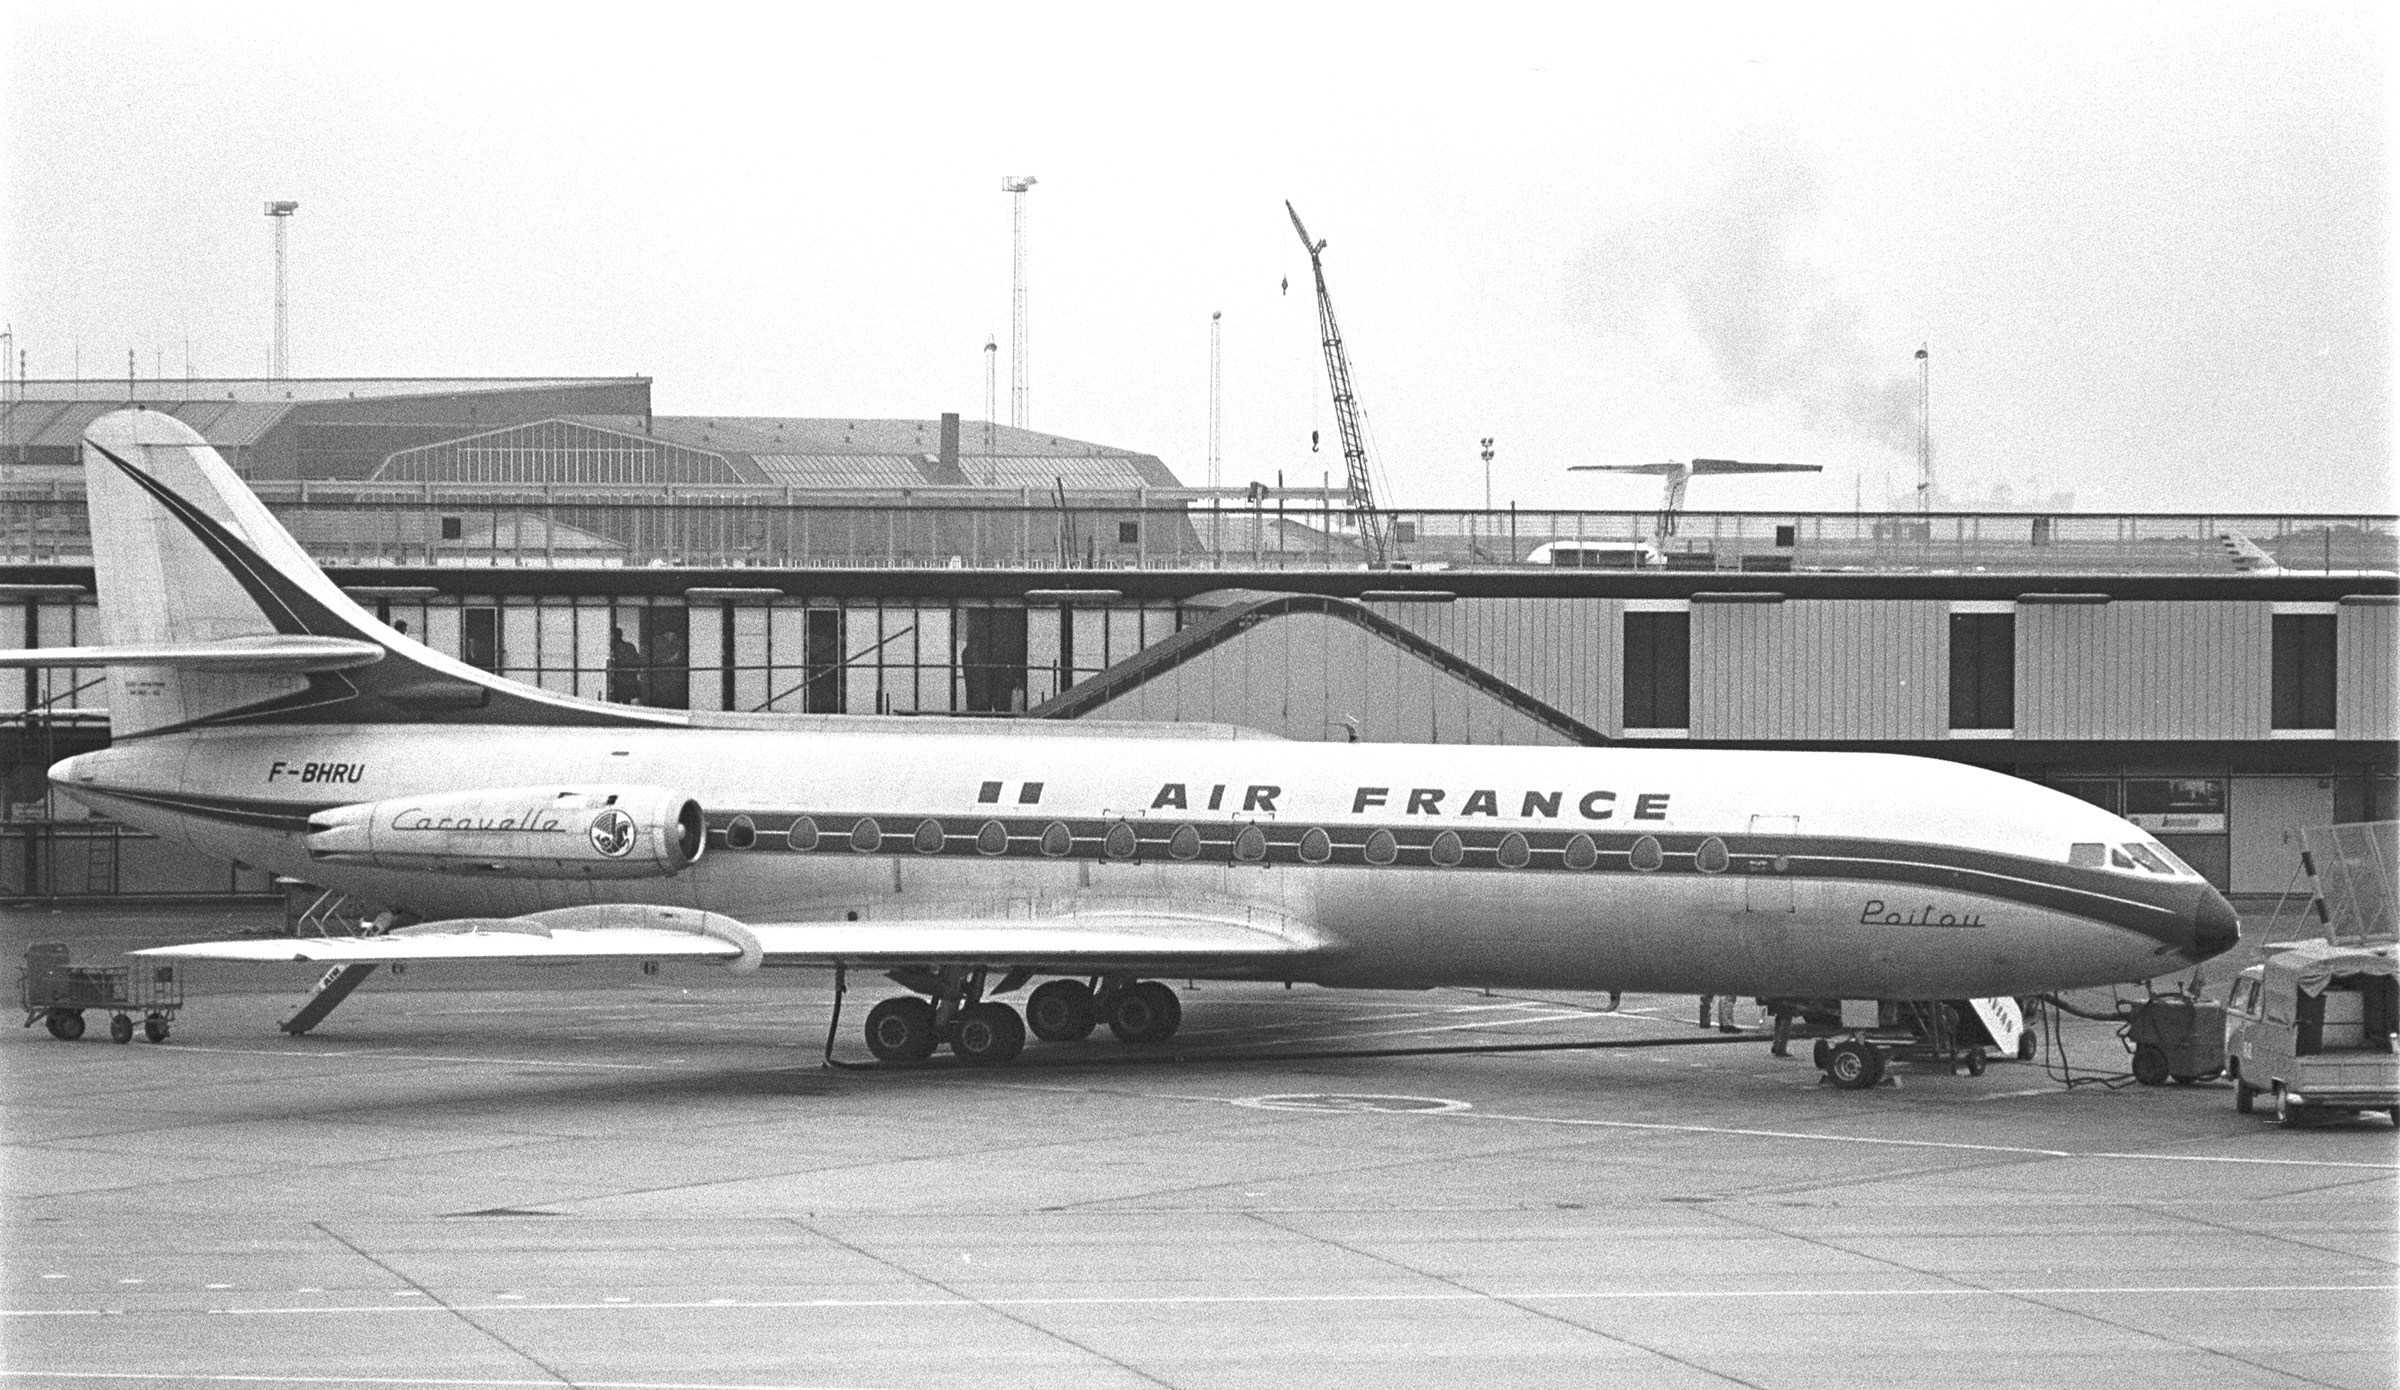 Sud Aviation SE-210 Caravelle F-BHRU, October 27th, 1969 - (photo by Nils Rosengaard via Nils Andersson)